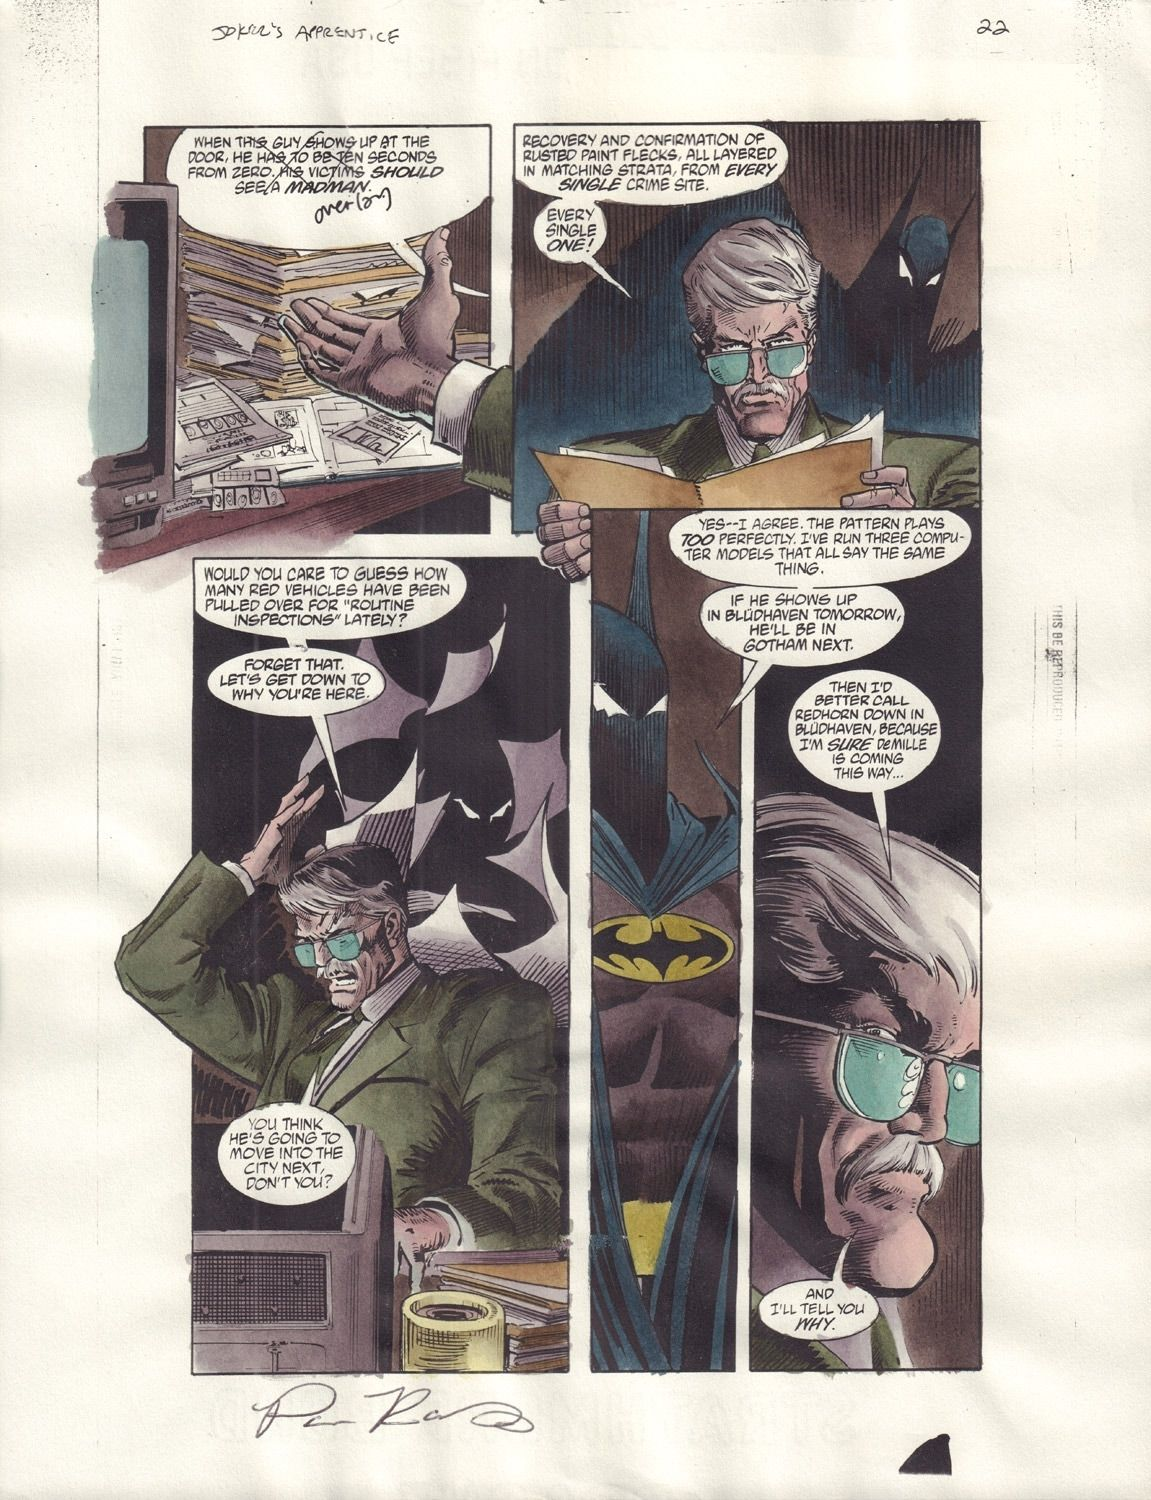 Batman: Joker's Apprentice #1 / 22